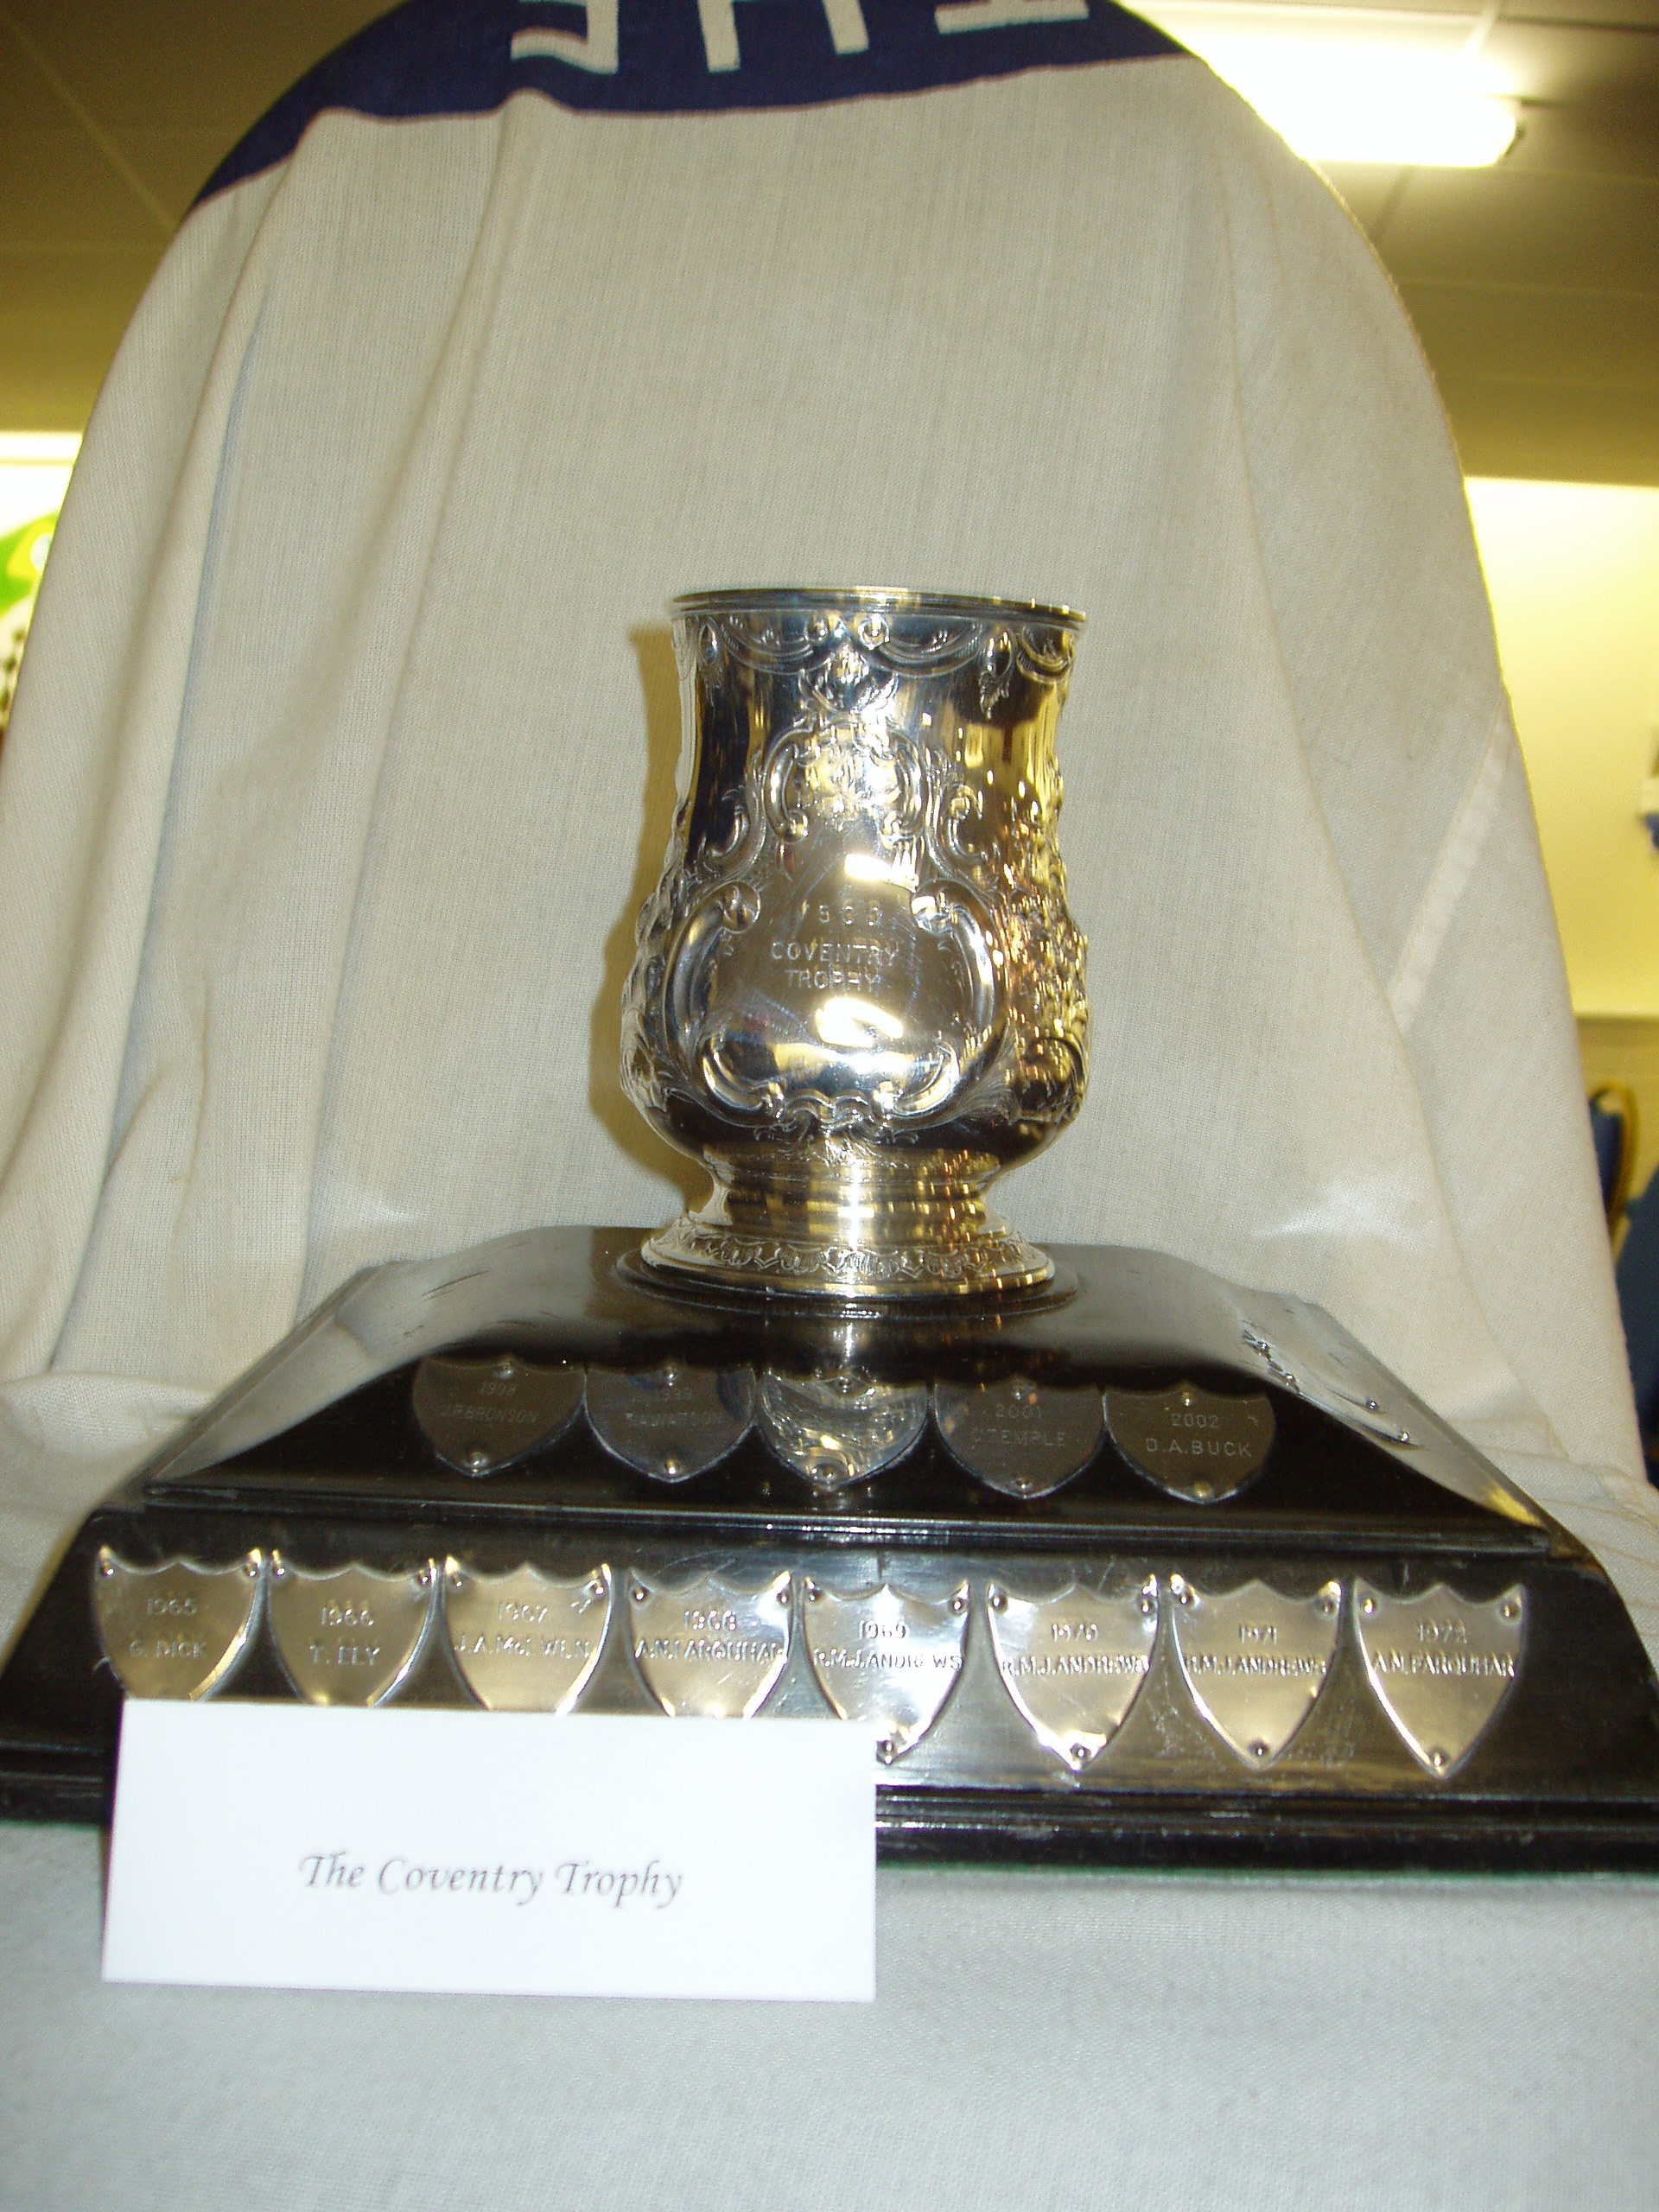 COVENTRY TROPHY cover